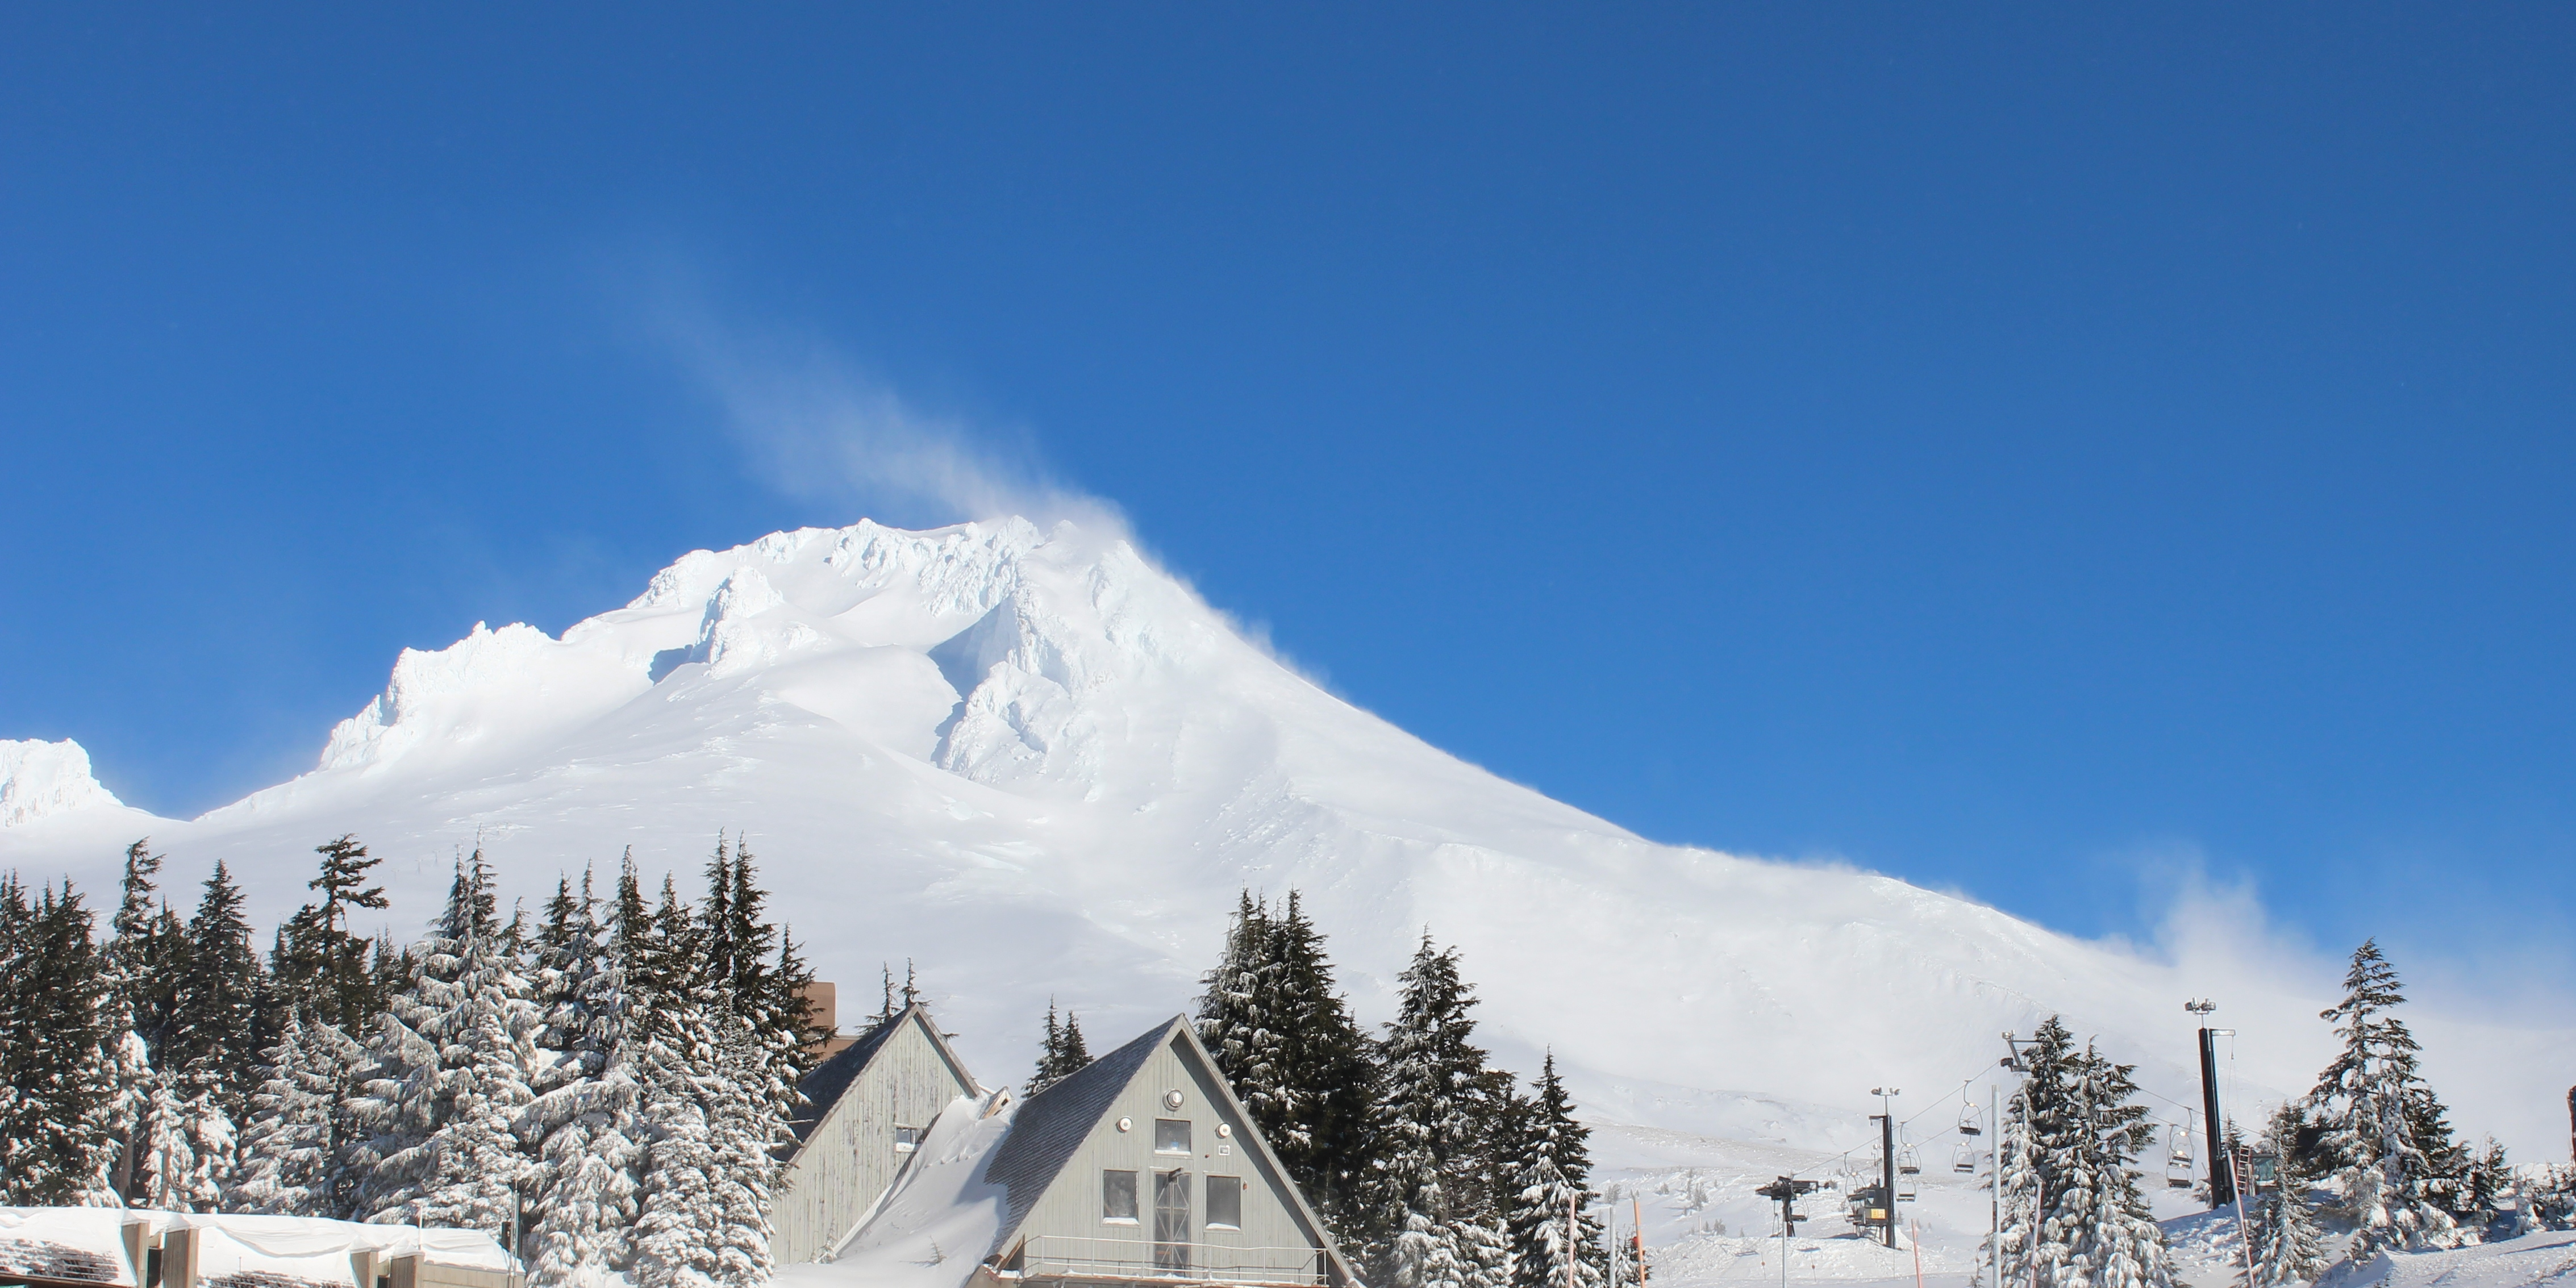 Wind rearranges the early season snowpack on Mount Hood, Oregon. NRCS photo by Spencer Miller